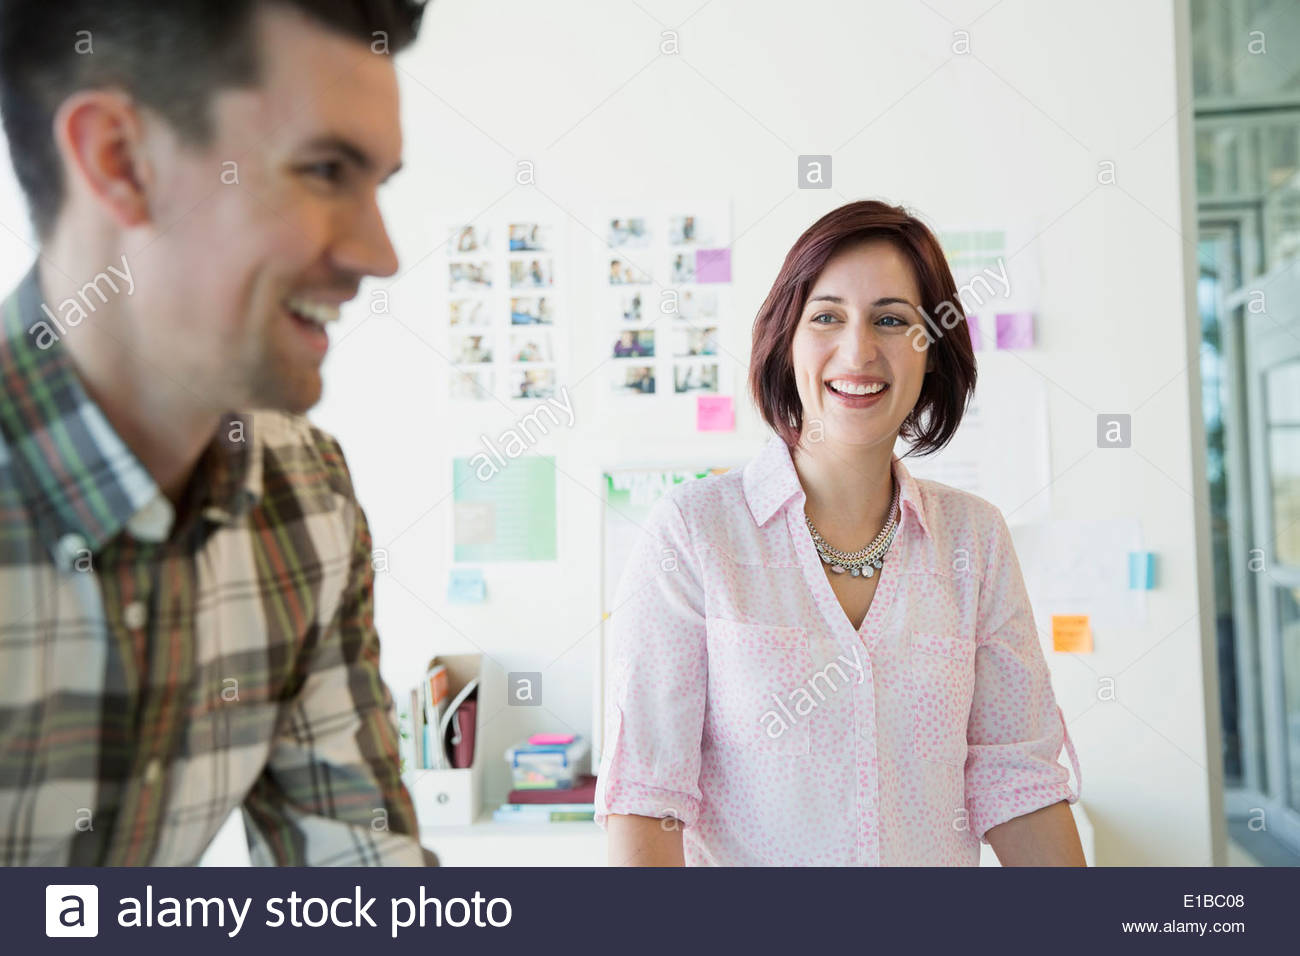 Smiling business people in office Photo Stock